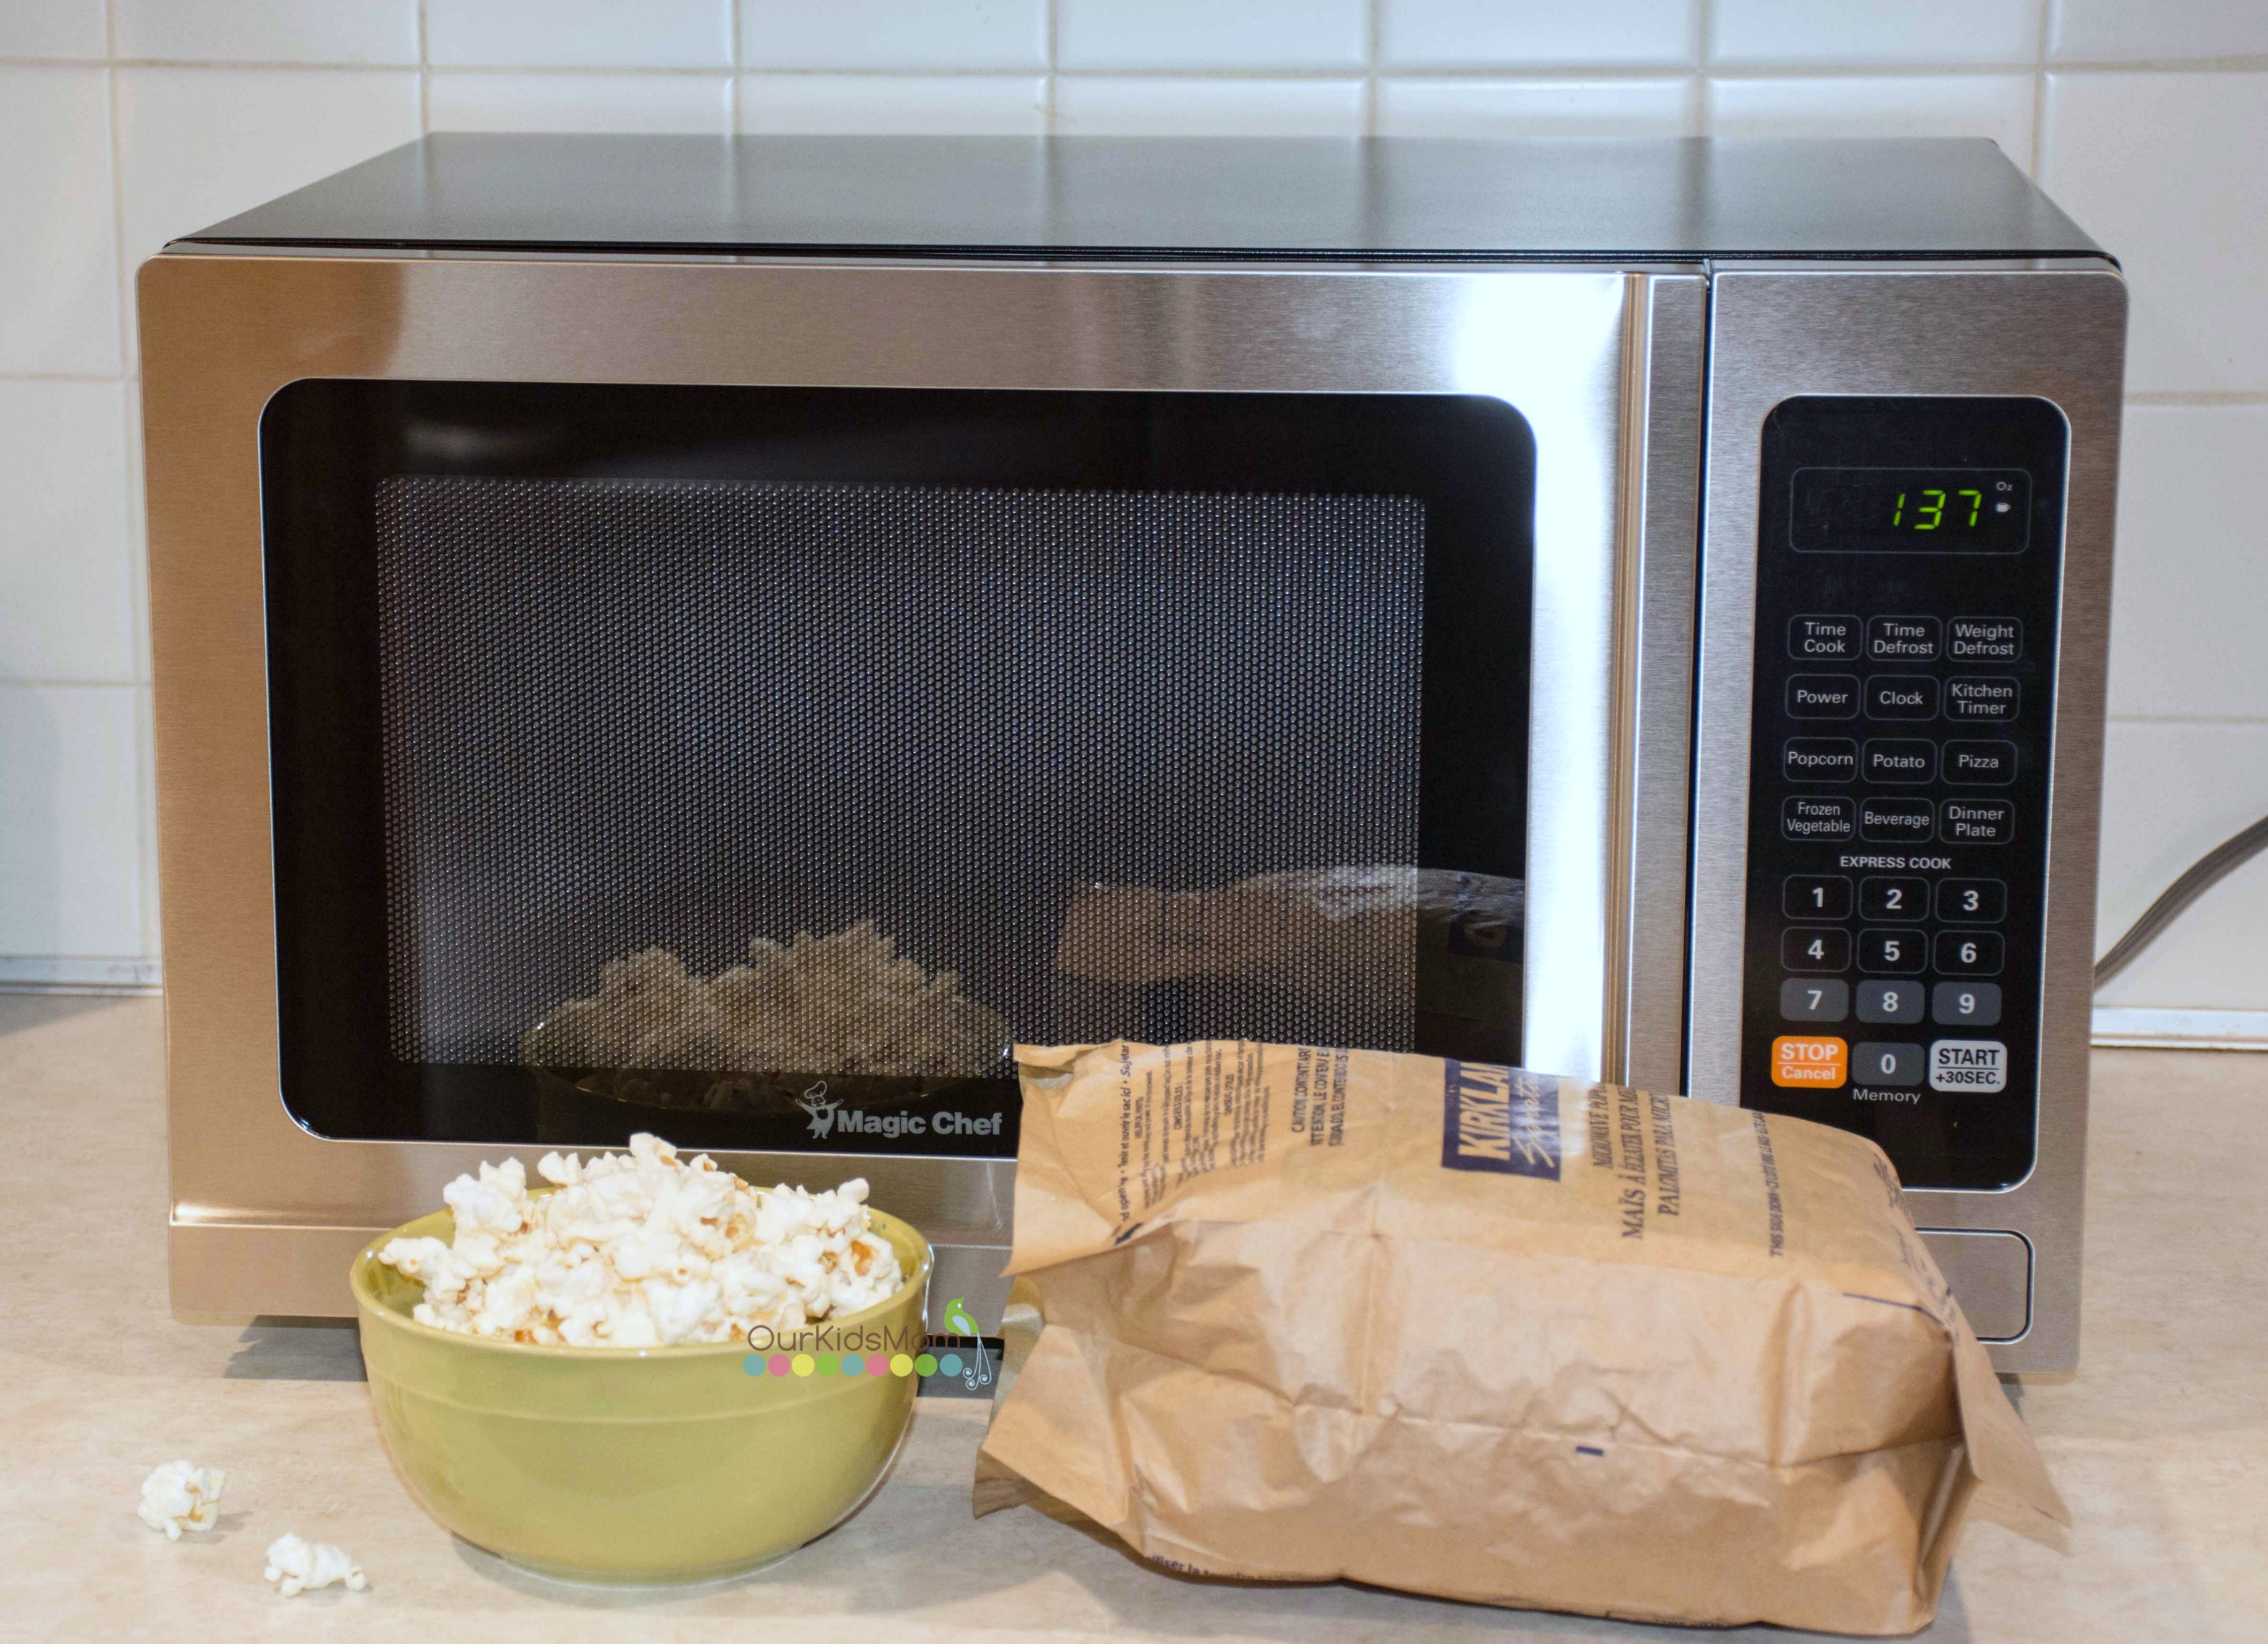 Magic Chef Microwave Giveaway